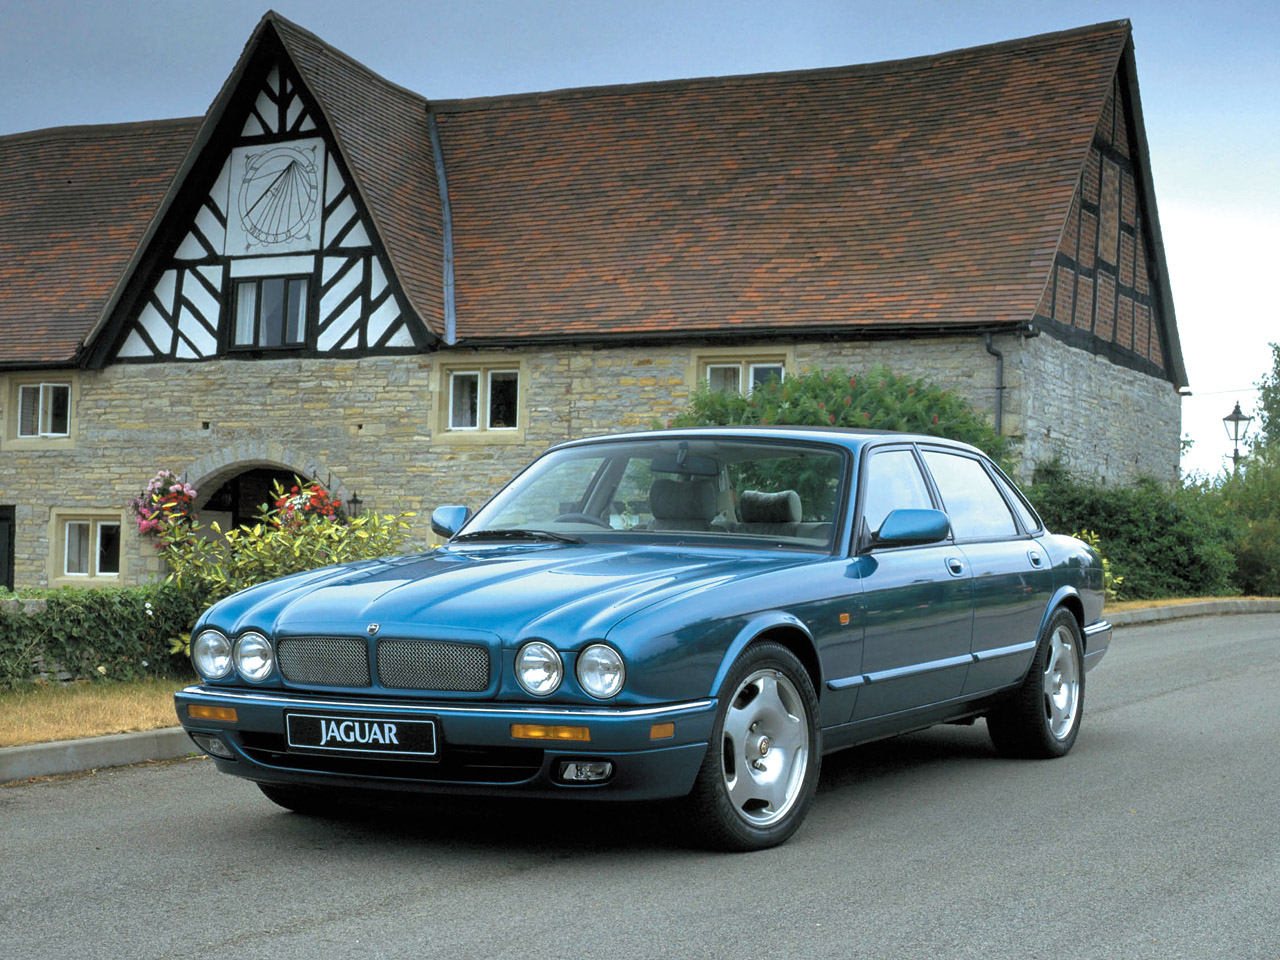 1997 jaguar xj6 classified ad sport car u p g. Black Bedroom Furniture Sets. Home Design Ideas